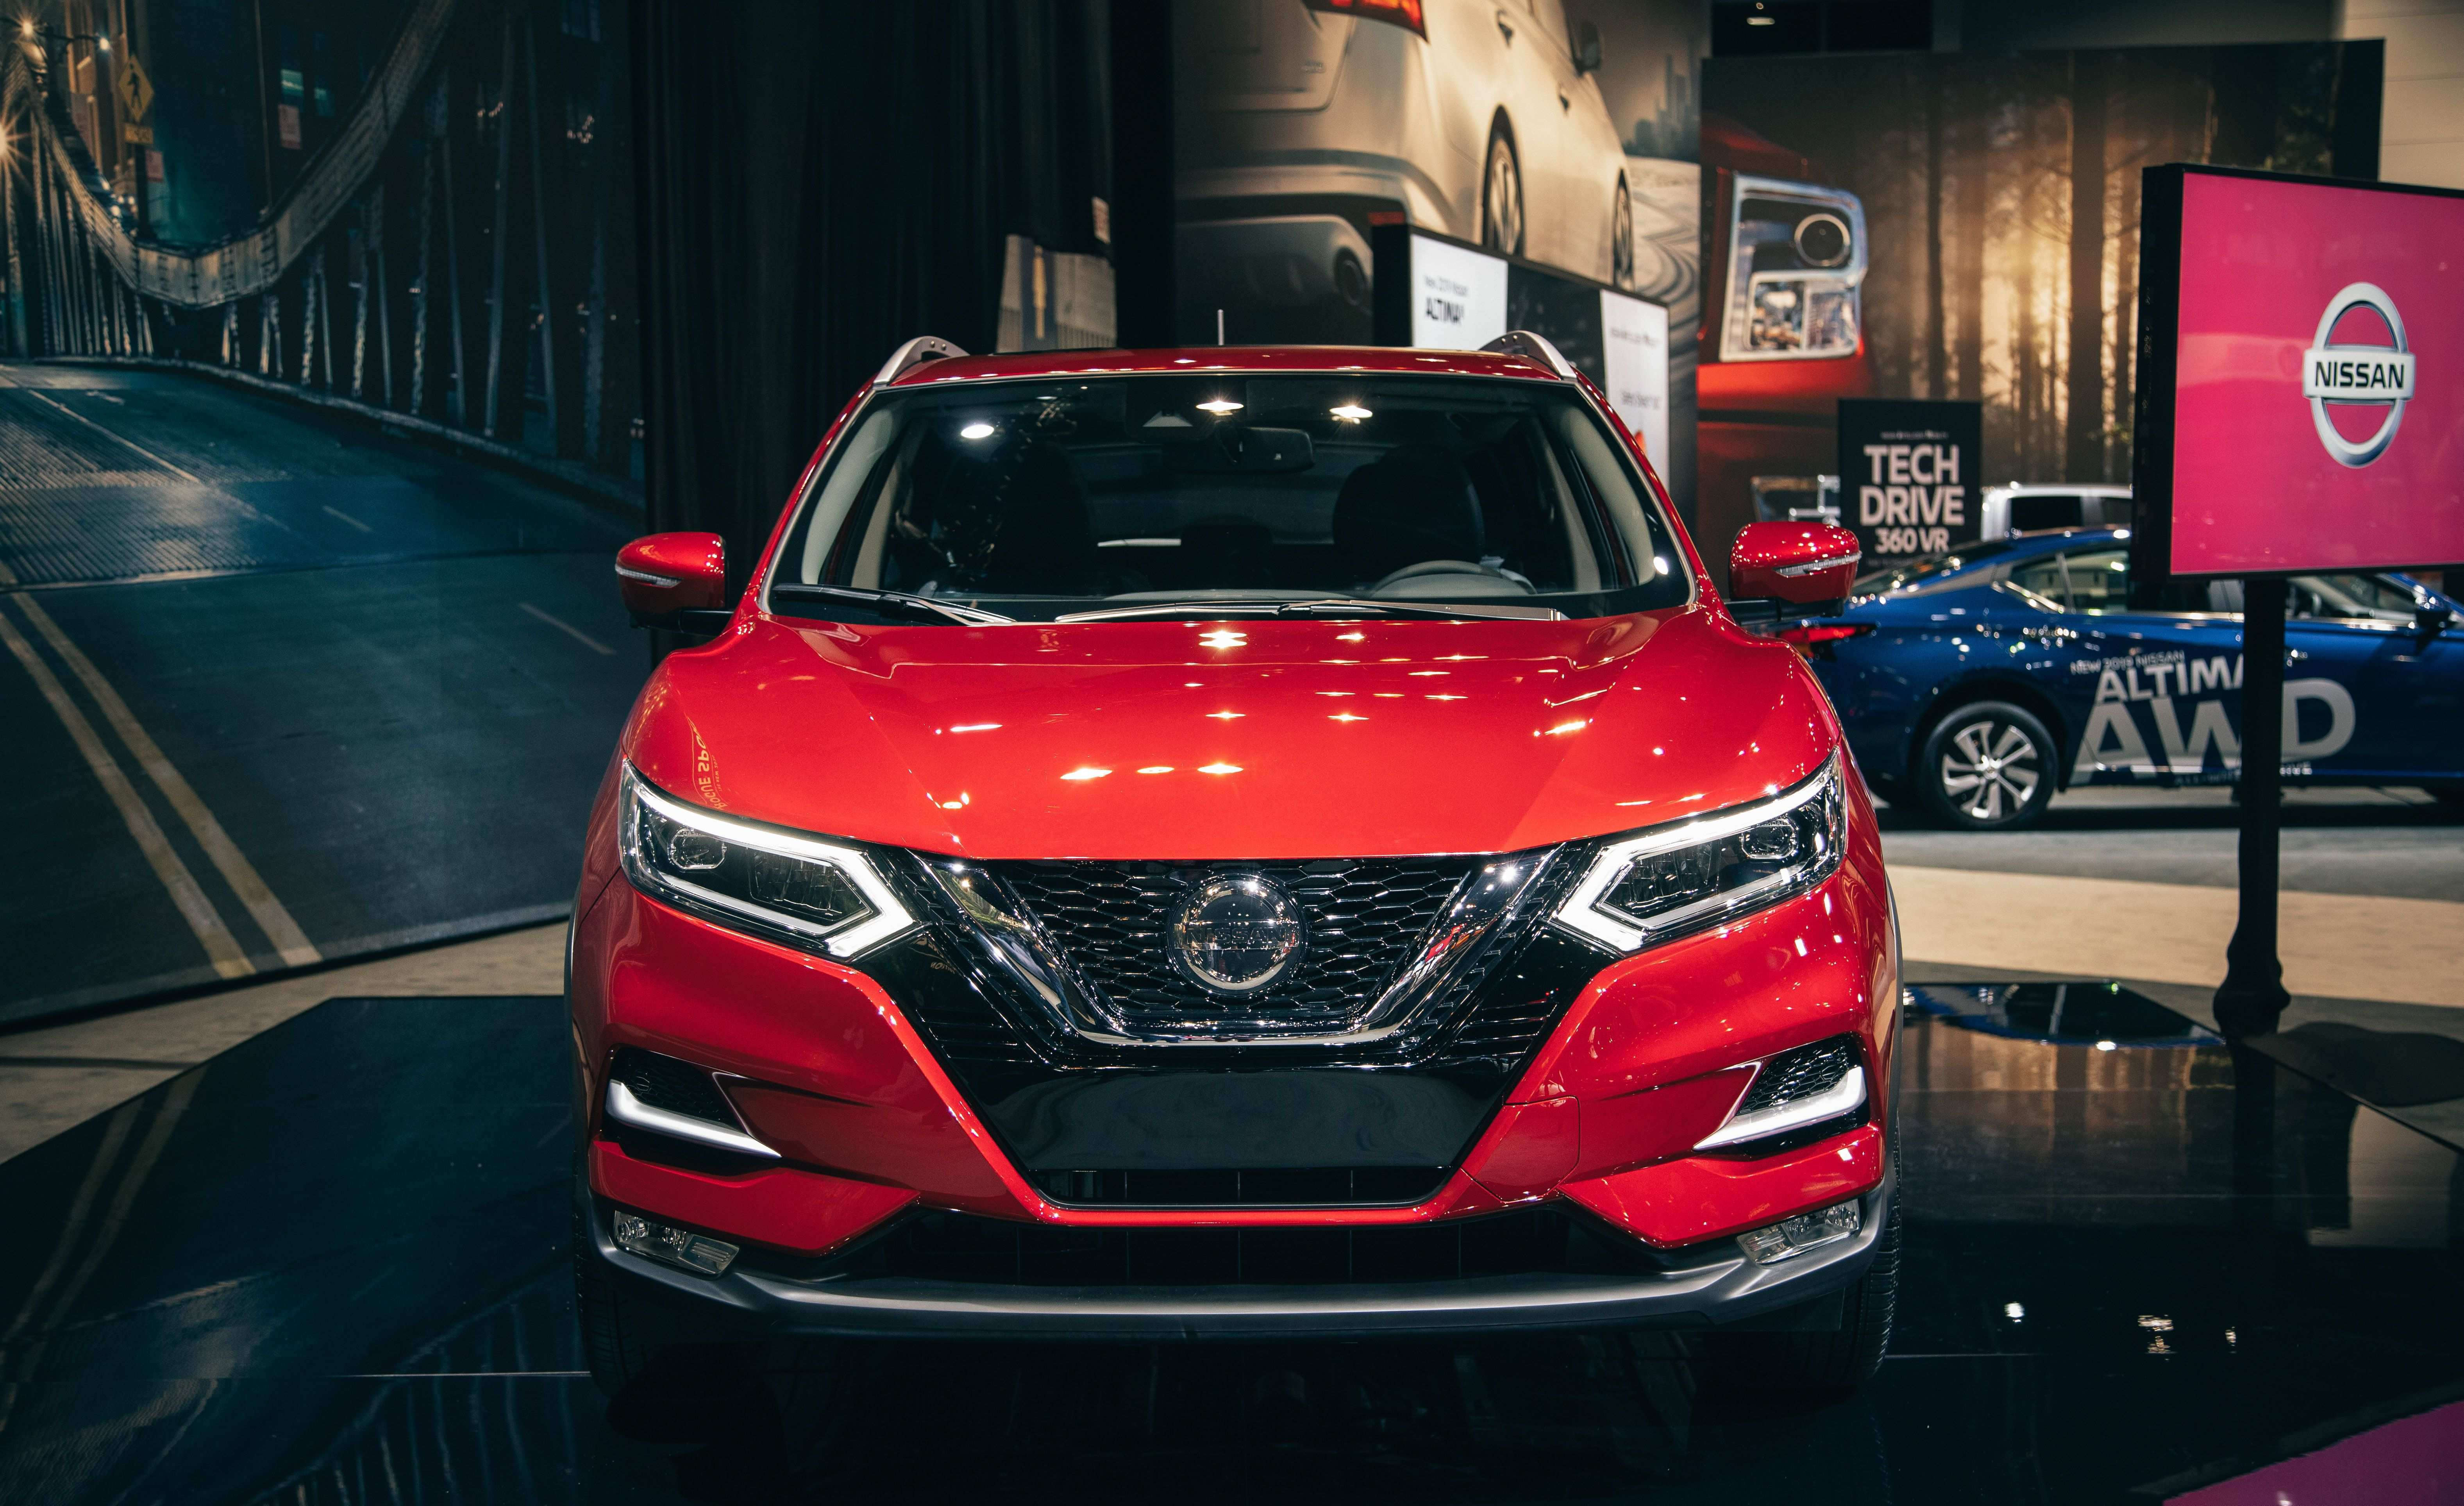 34 The Best Nissan Rogue Sport 2020 Release Date Price